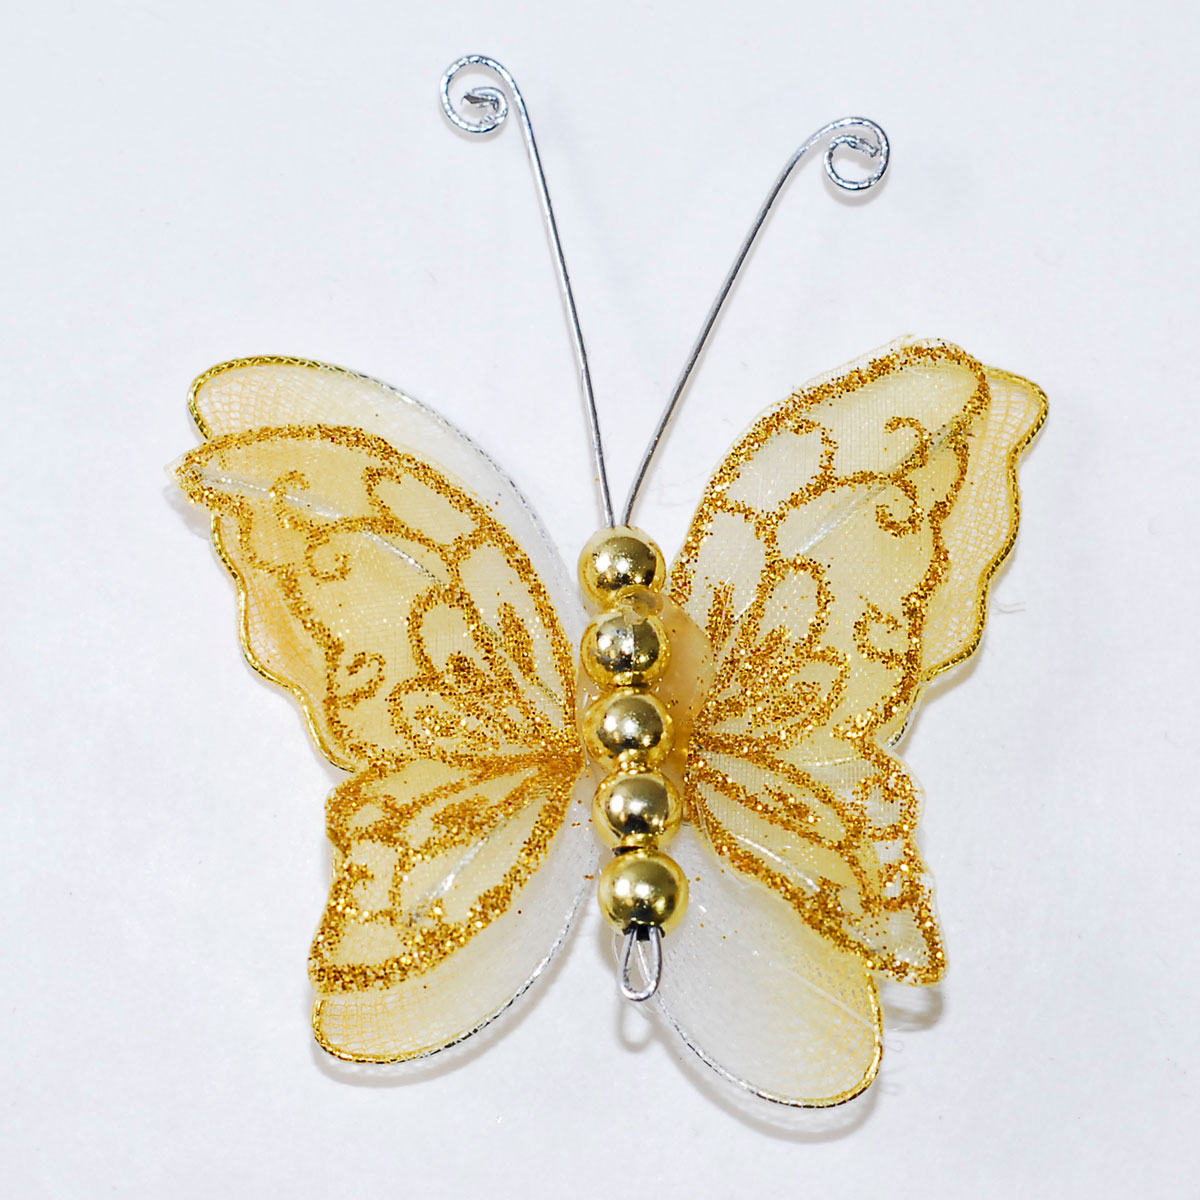 2 Quot Sheer Nylon Crystal Wire Butterfly W Beads Party